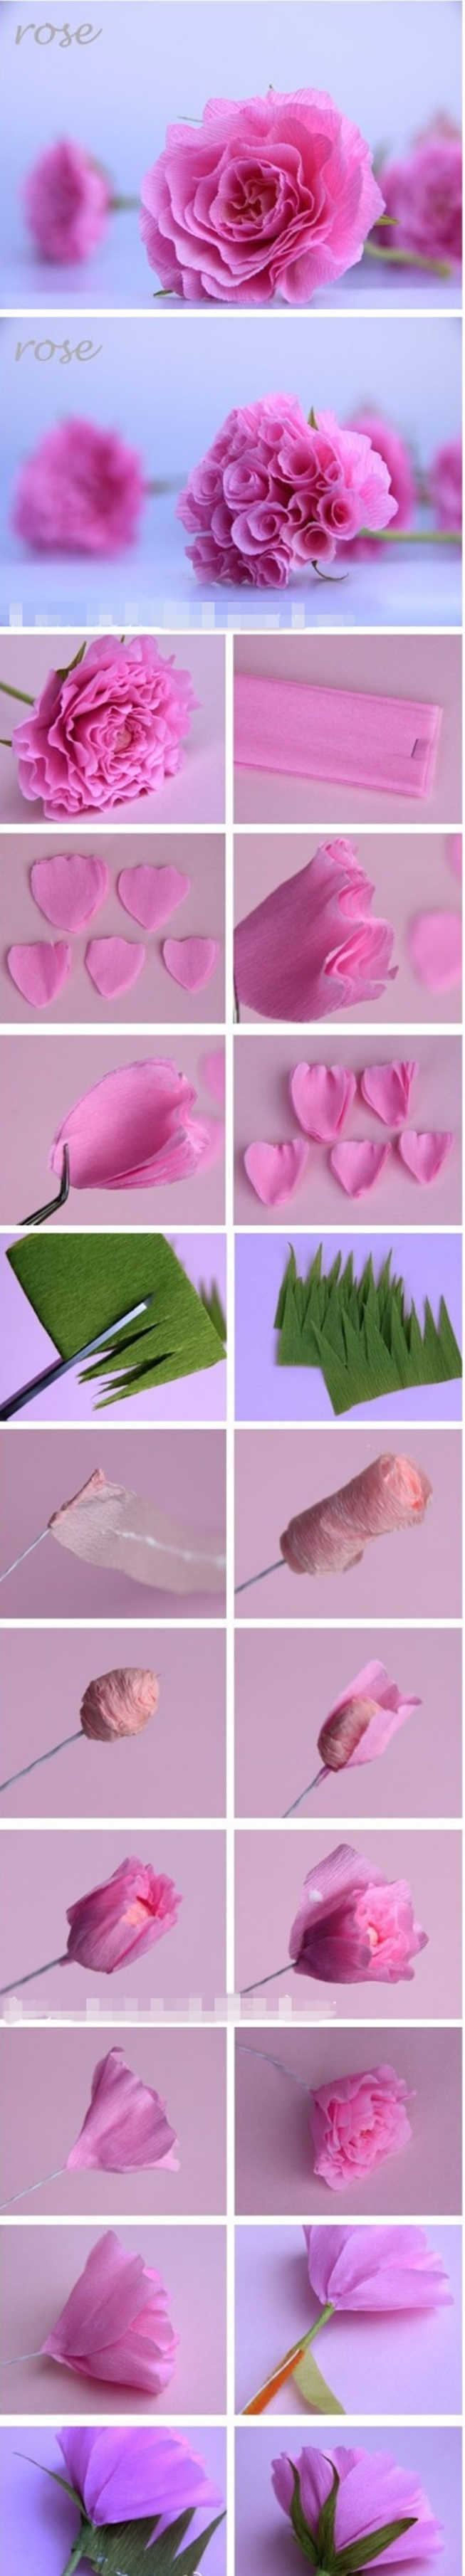 Sparkle 36 how to make origami flowers pumpernickel pixie how to make paper flowers using origami the art of paper folding fun paper diy on mightylinksfo